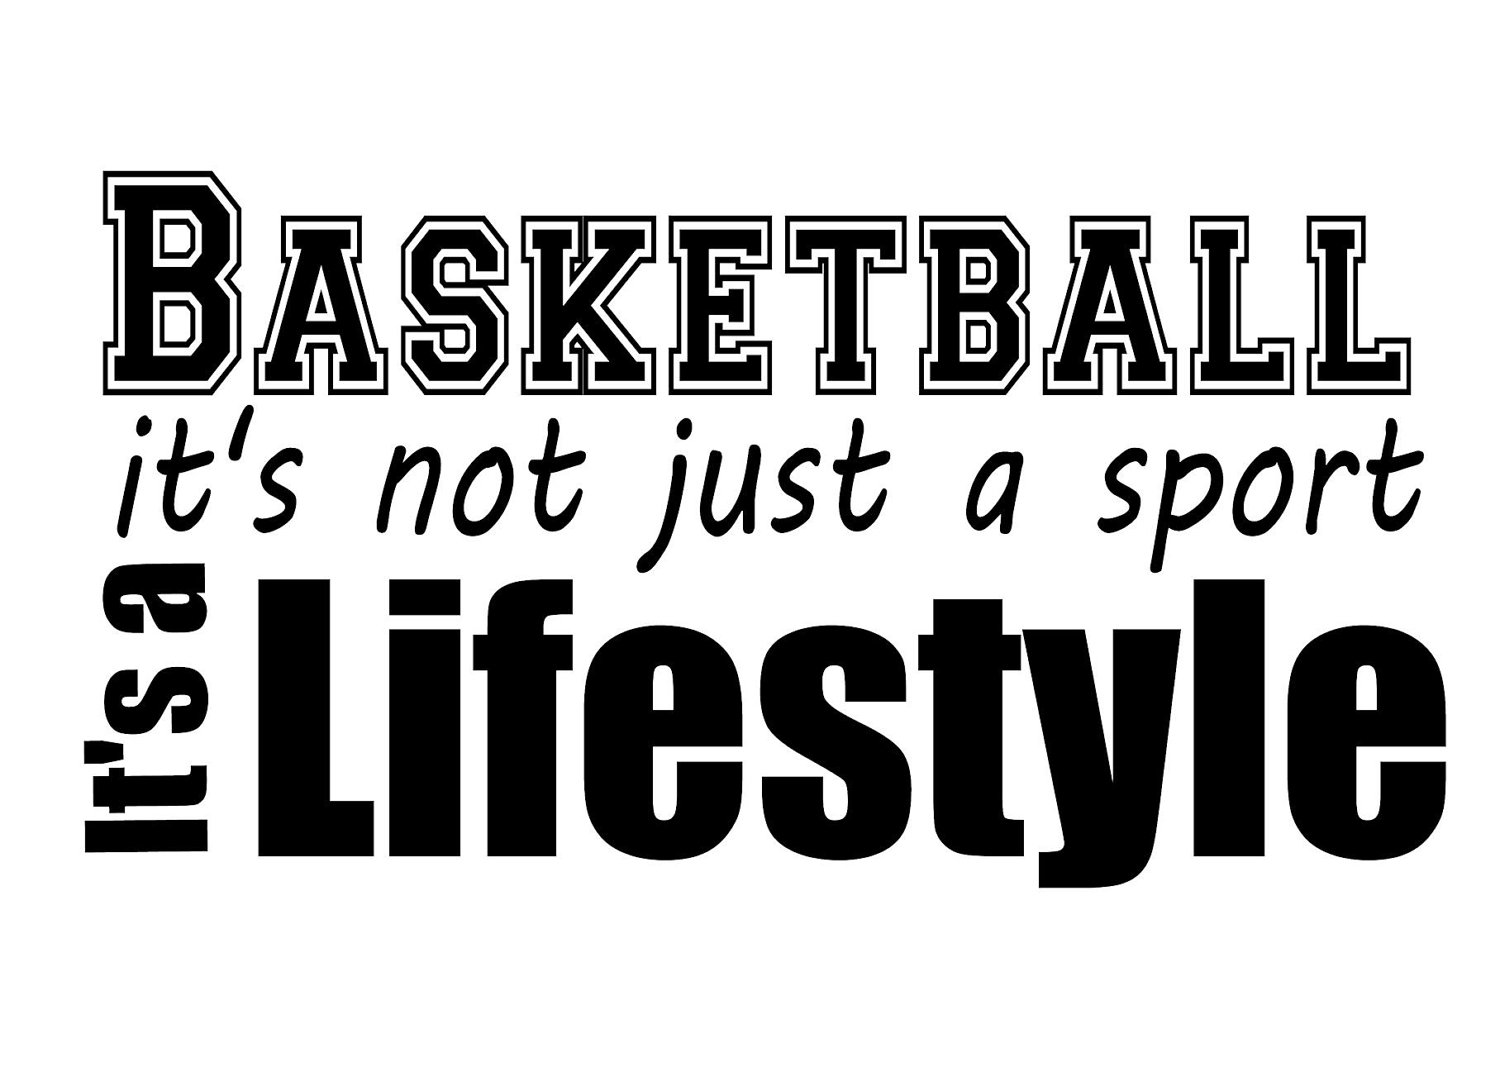 Basketball Quotes Wallpapers Sf Wallpaper